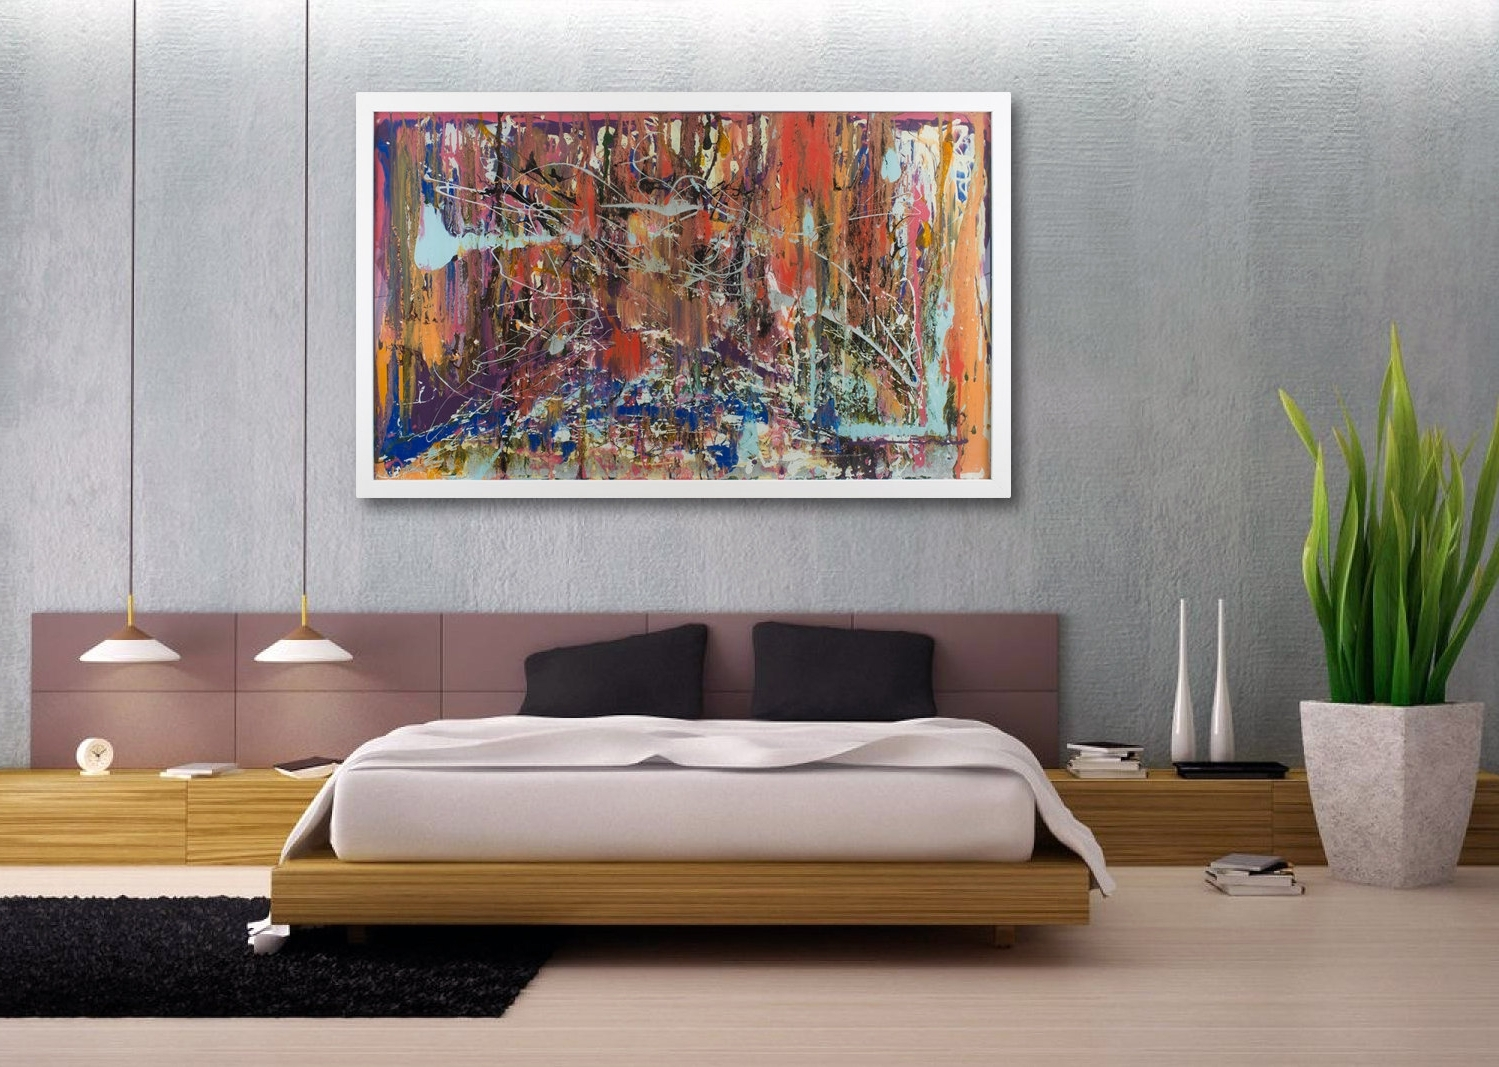 Widely Used Large Framed Abstract Wall Art Pertaining To Innovative Way Modern Wall Decor Room — Joanne Russo Homesjoanne (View 5 of 15)